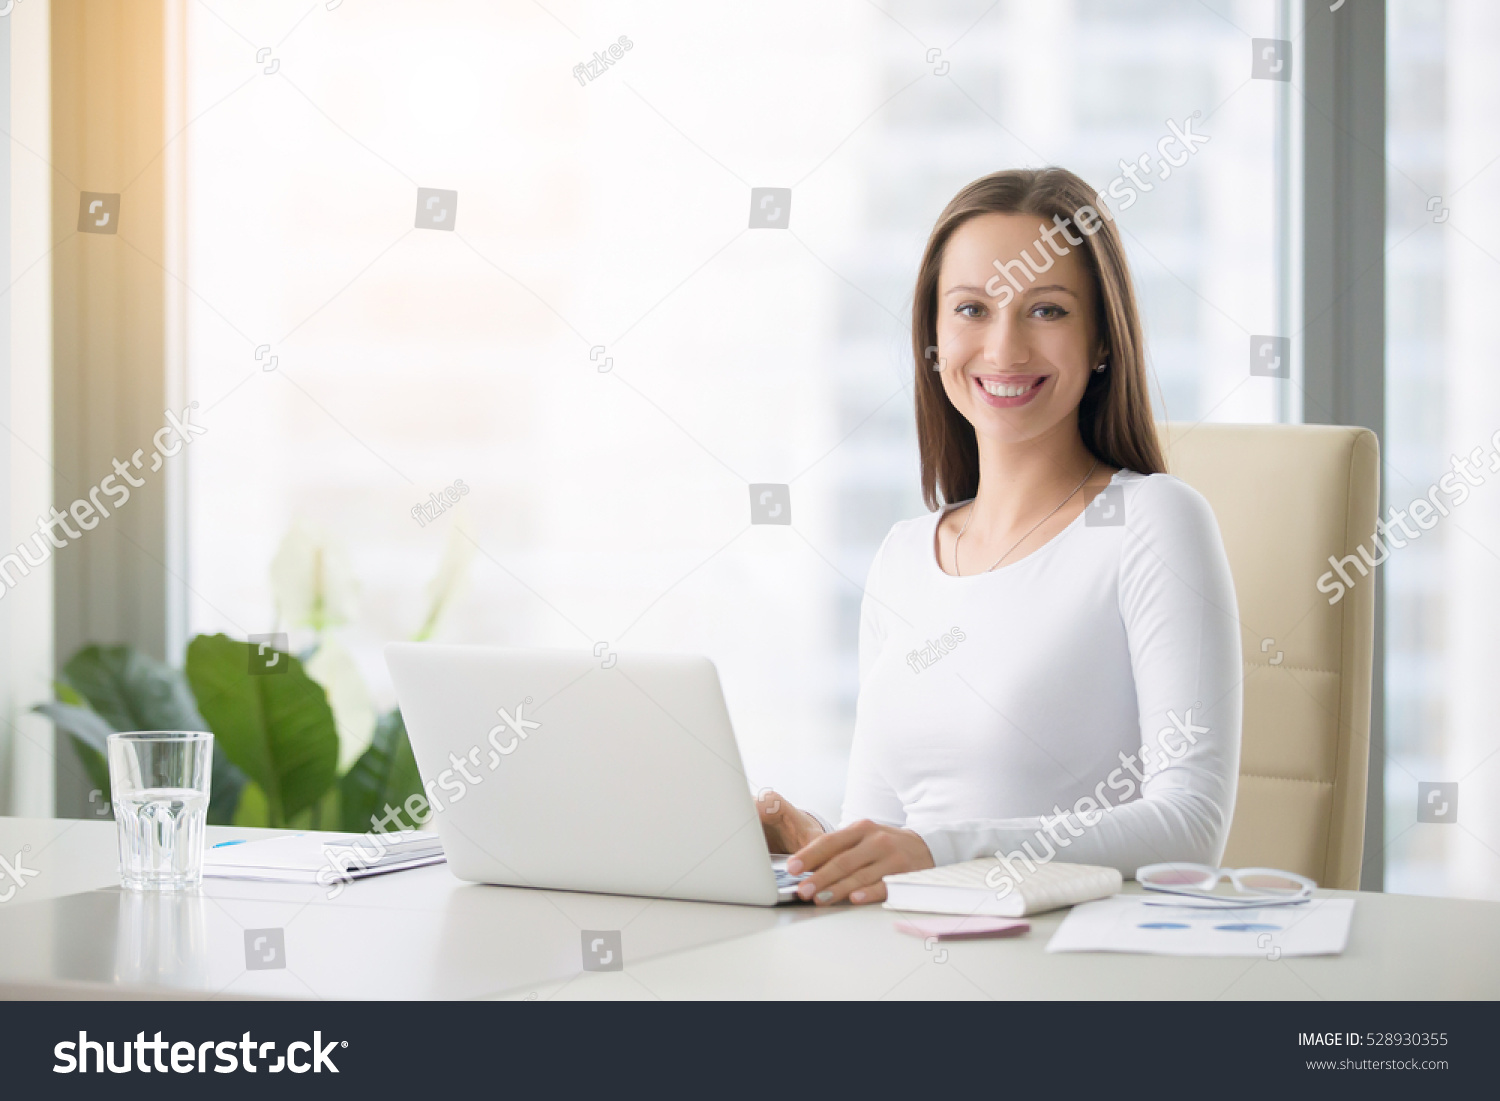 Young Smiling Female Receptionist Modern Office Stock ...